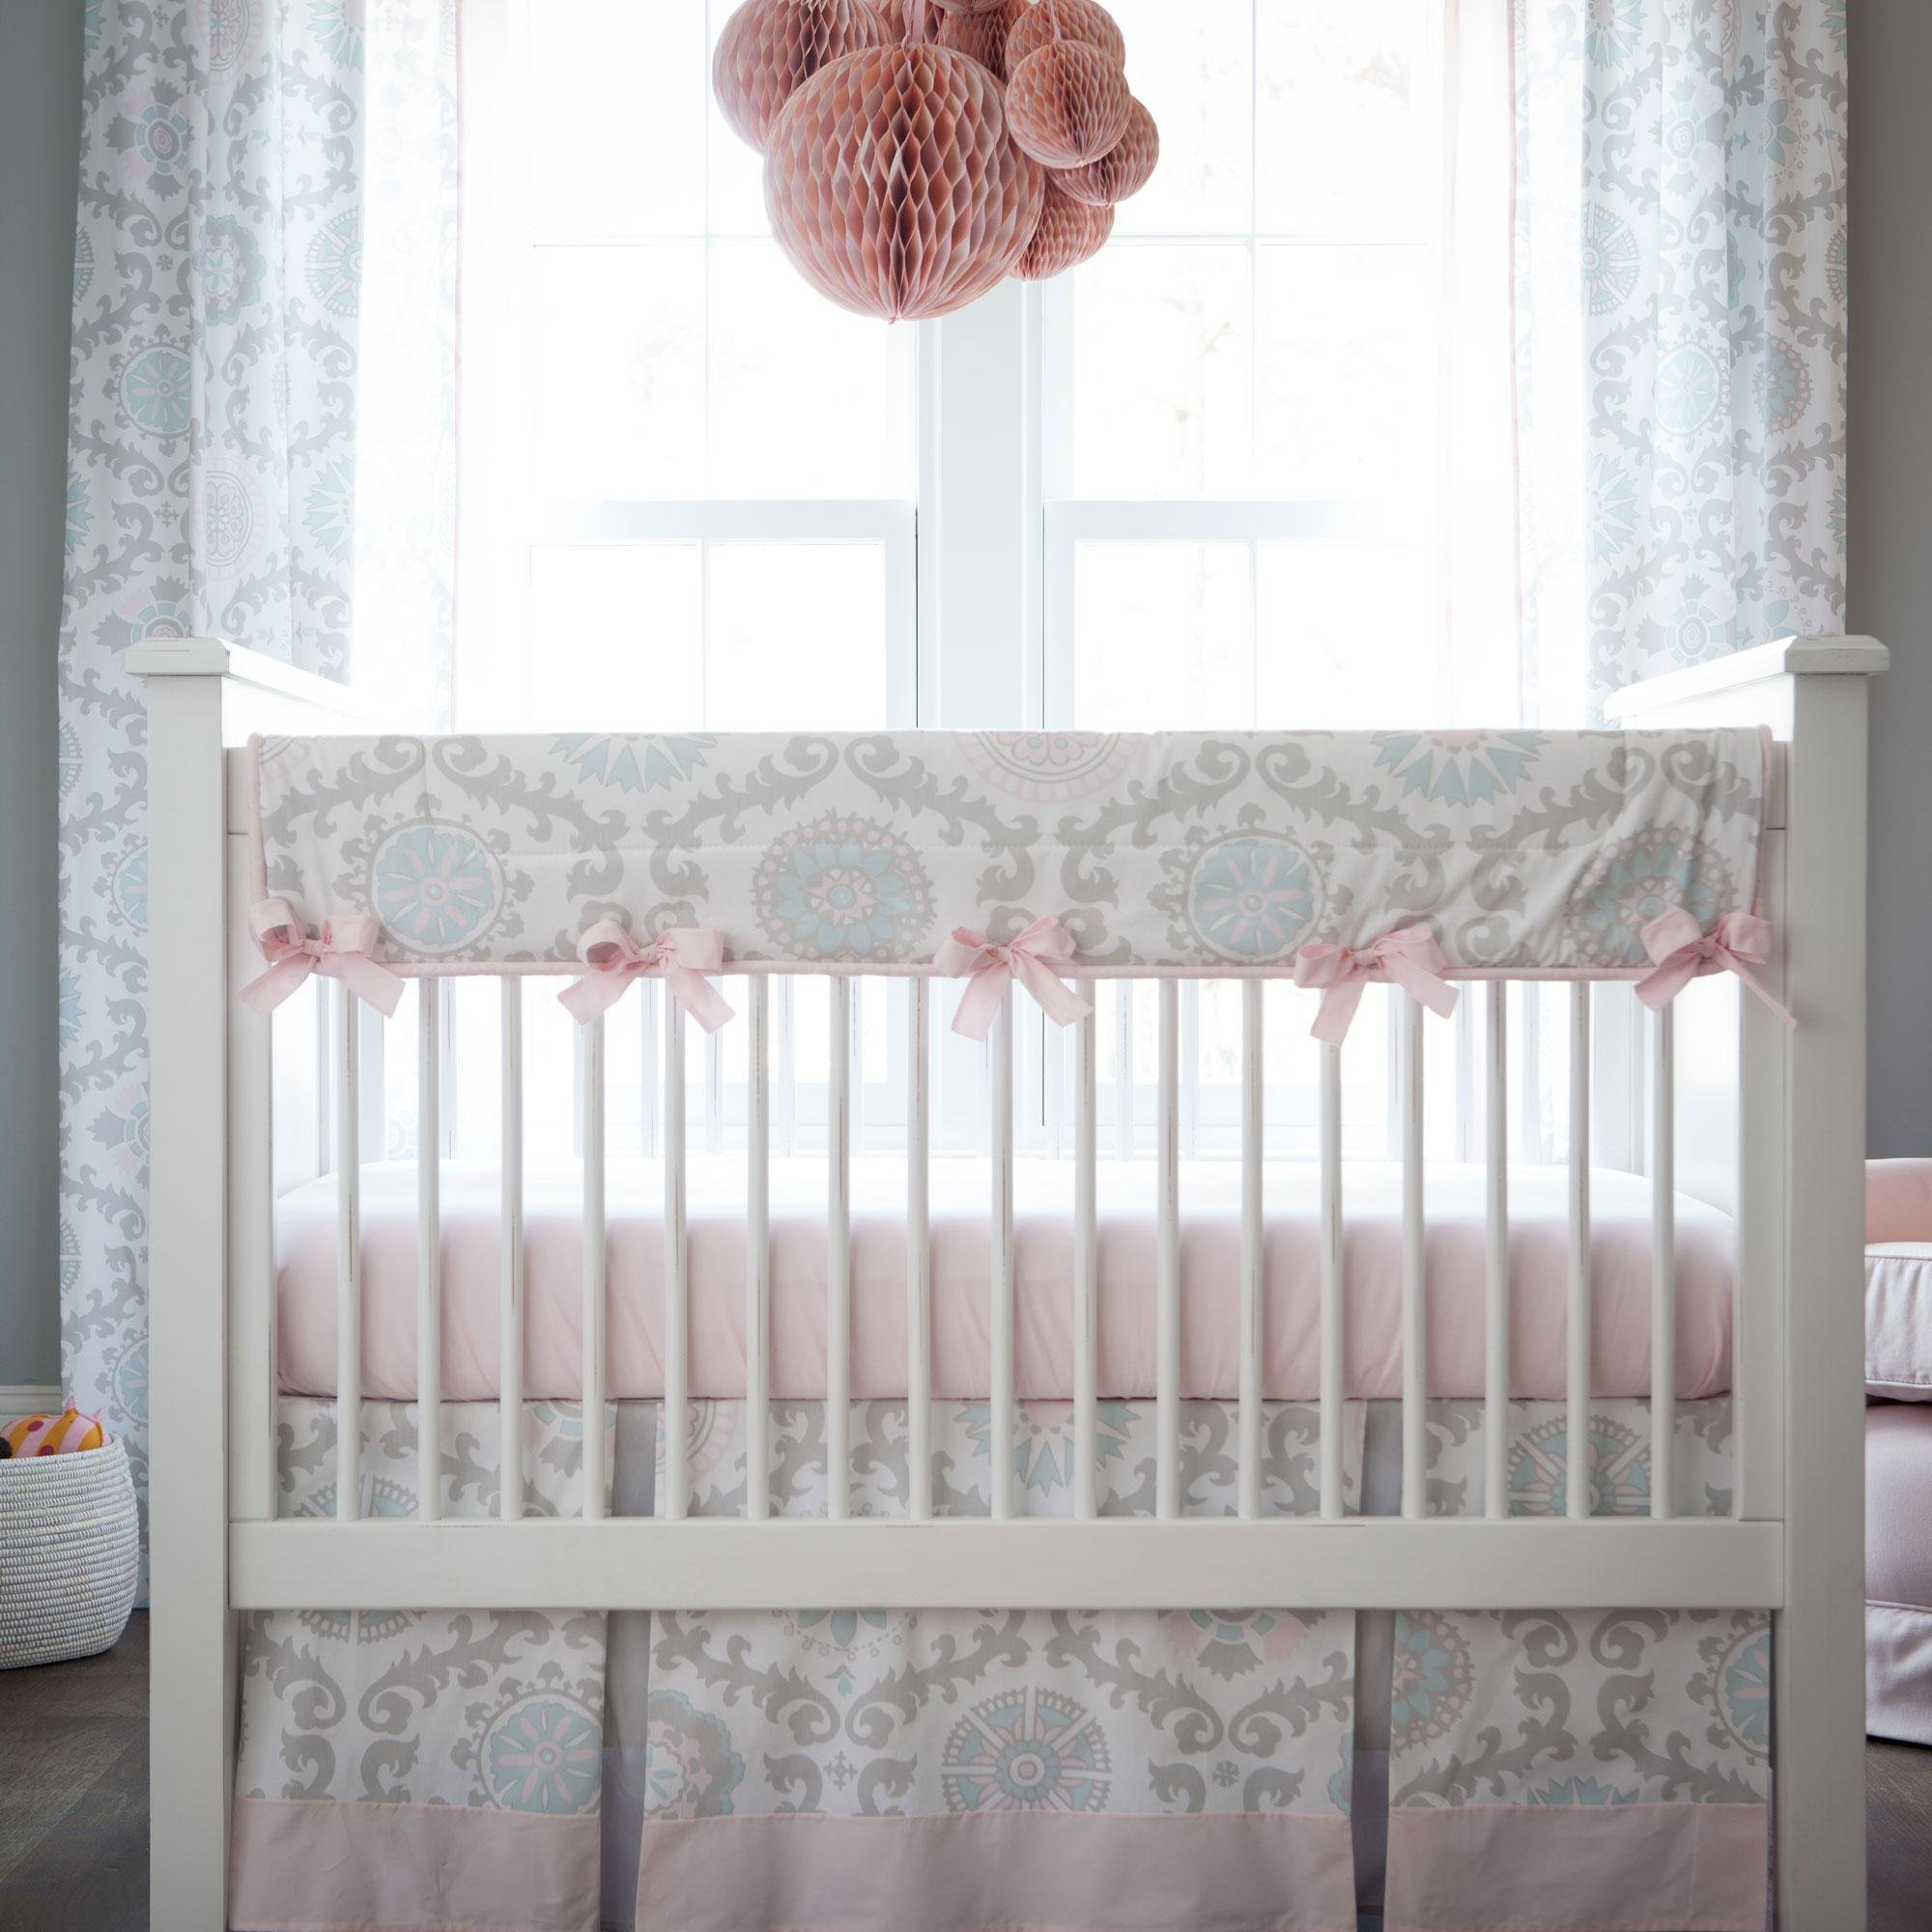 Carousel Designs Pink and Gray Rosa Crib Rail Cover by Carousel Designs